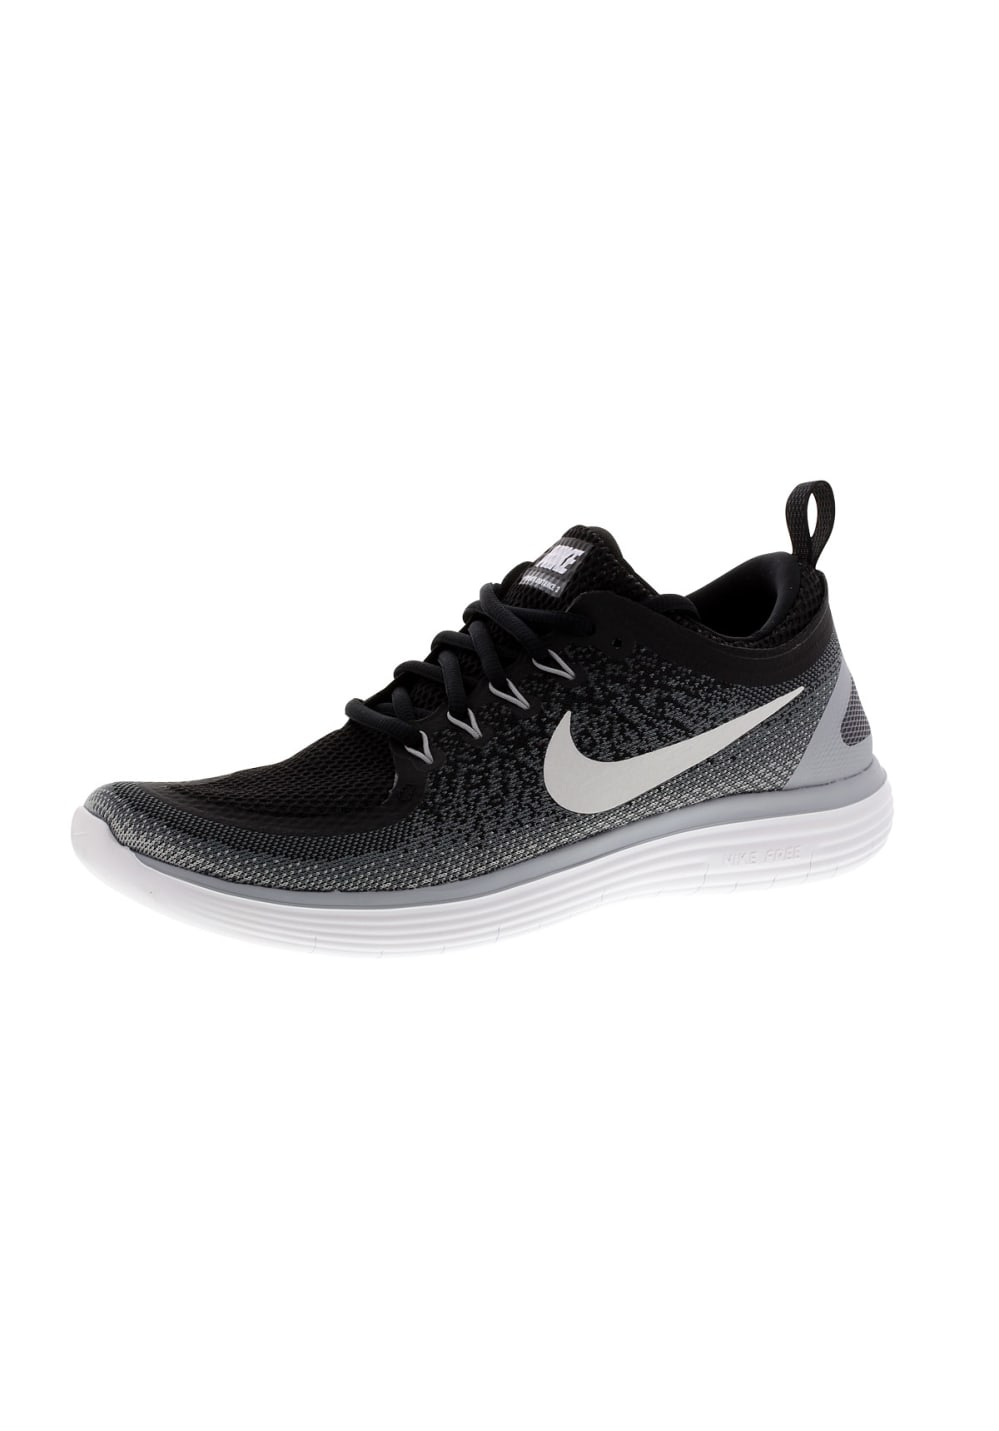 photos officielles 60f45 ebf26 Nike Free RN Distance 2 - Chaussures running pour Homme - Noir